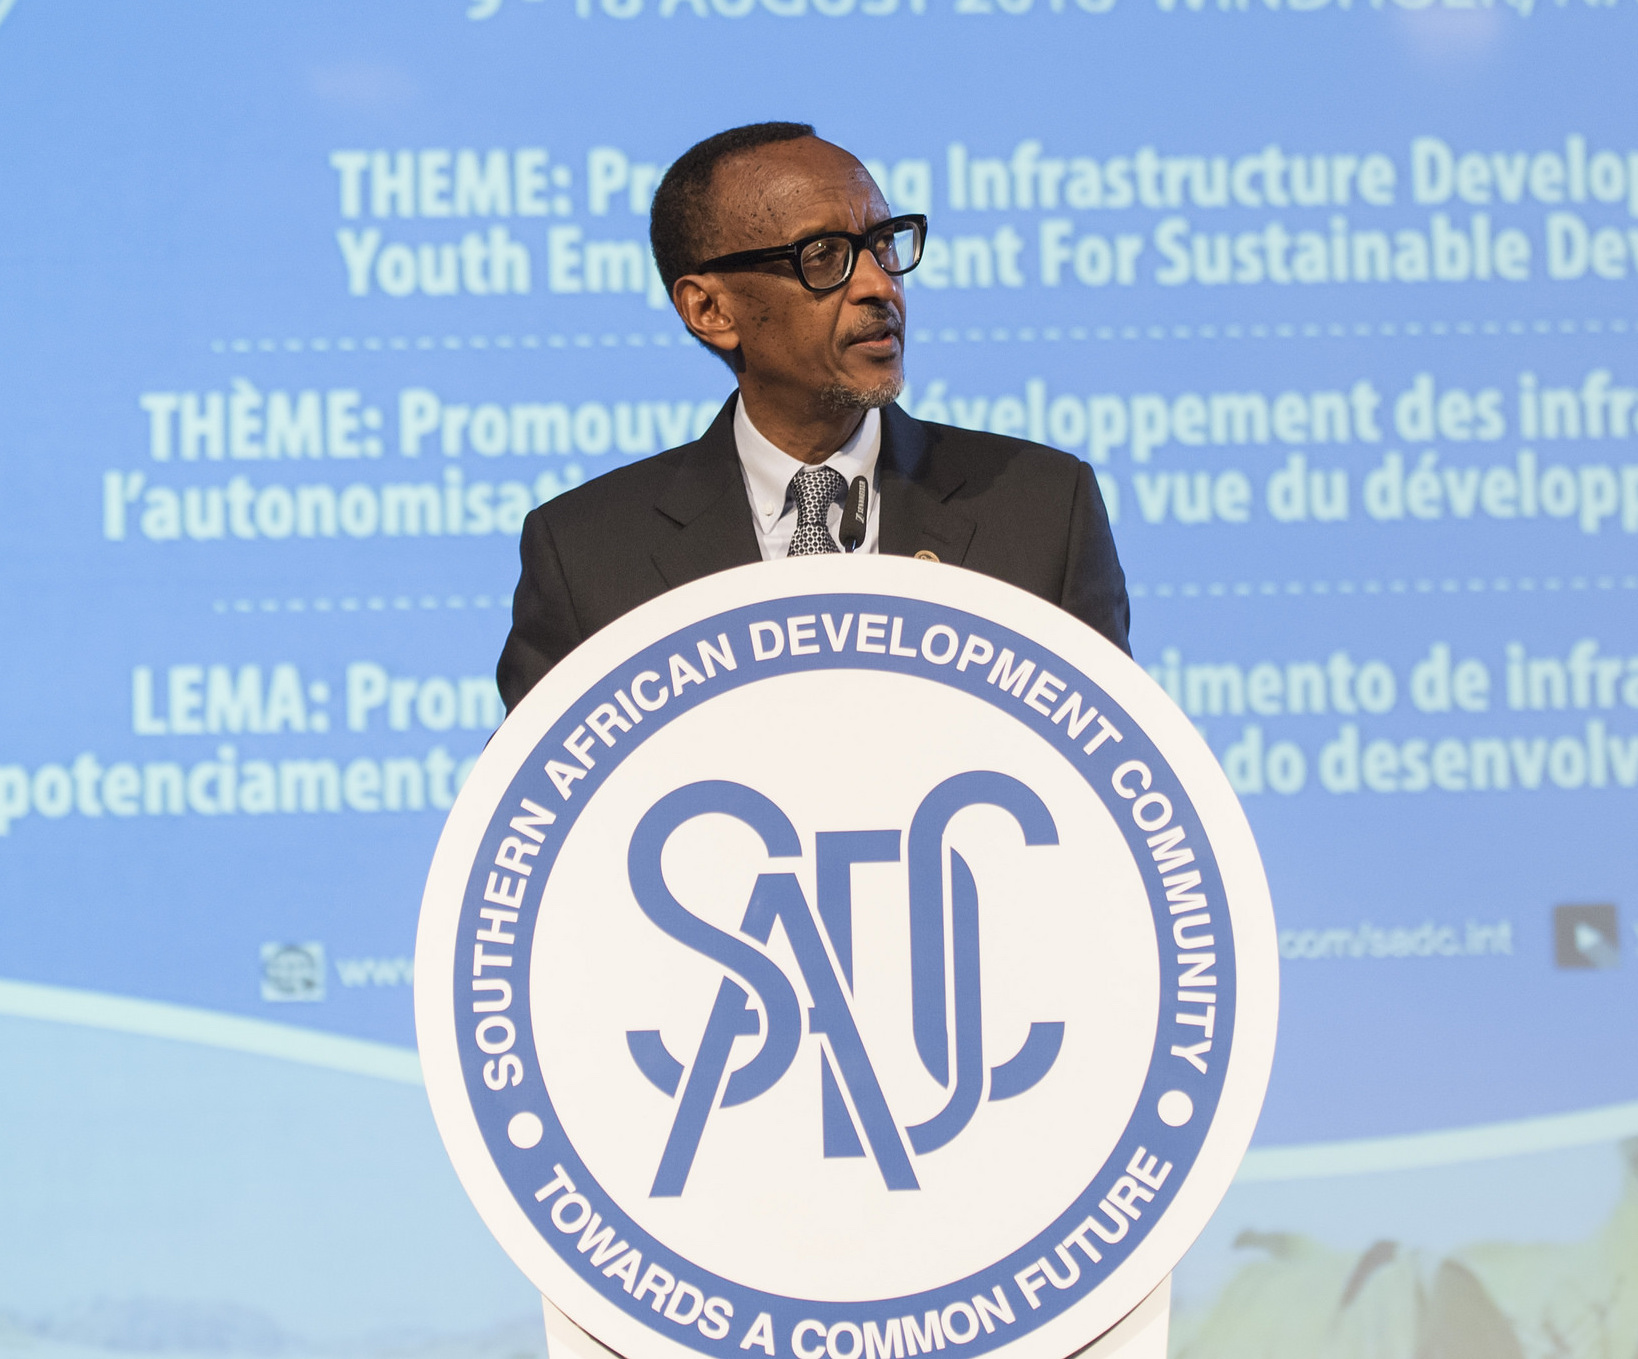 President Kagame addressing the SADC summit in Windhoek on Friday 17th June 2018